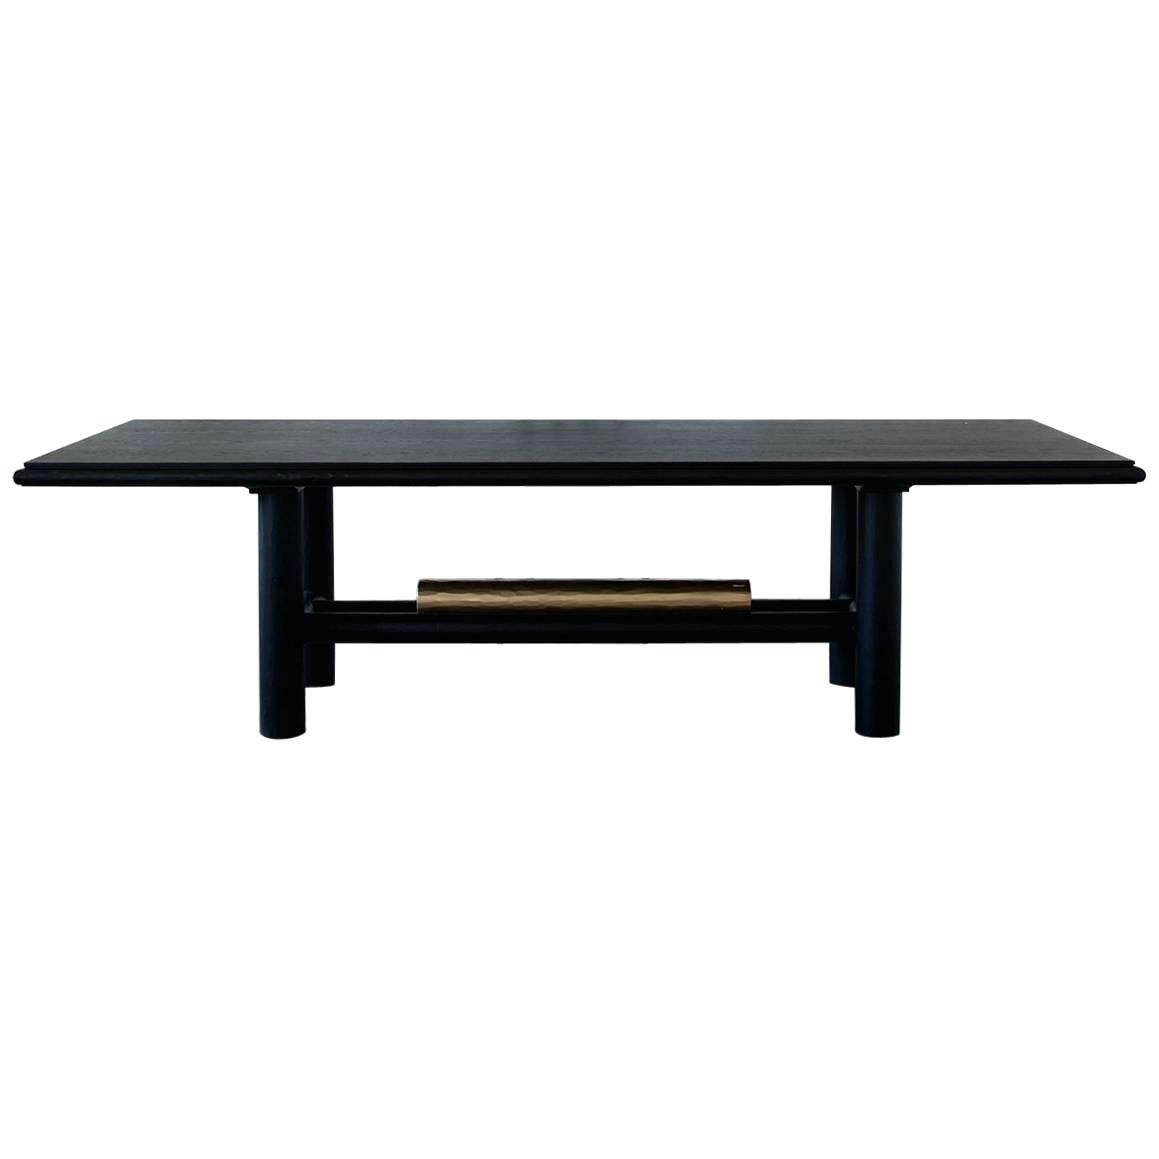 1159x1159 dining table drawing wild dining table rooms for sale dining table